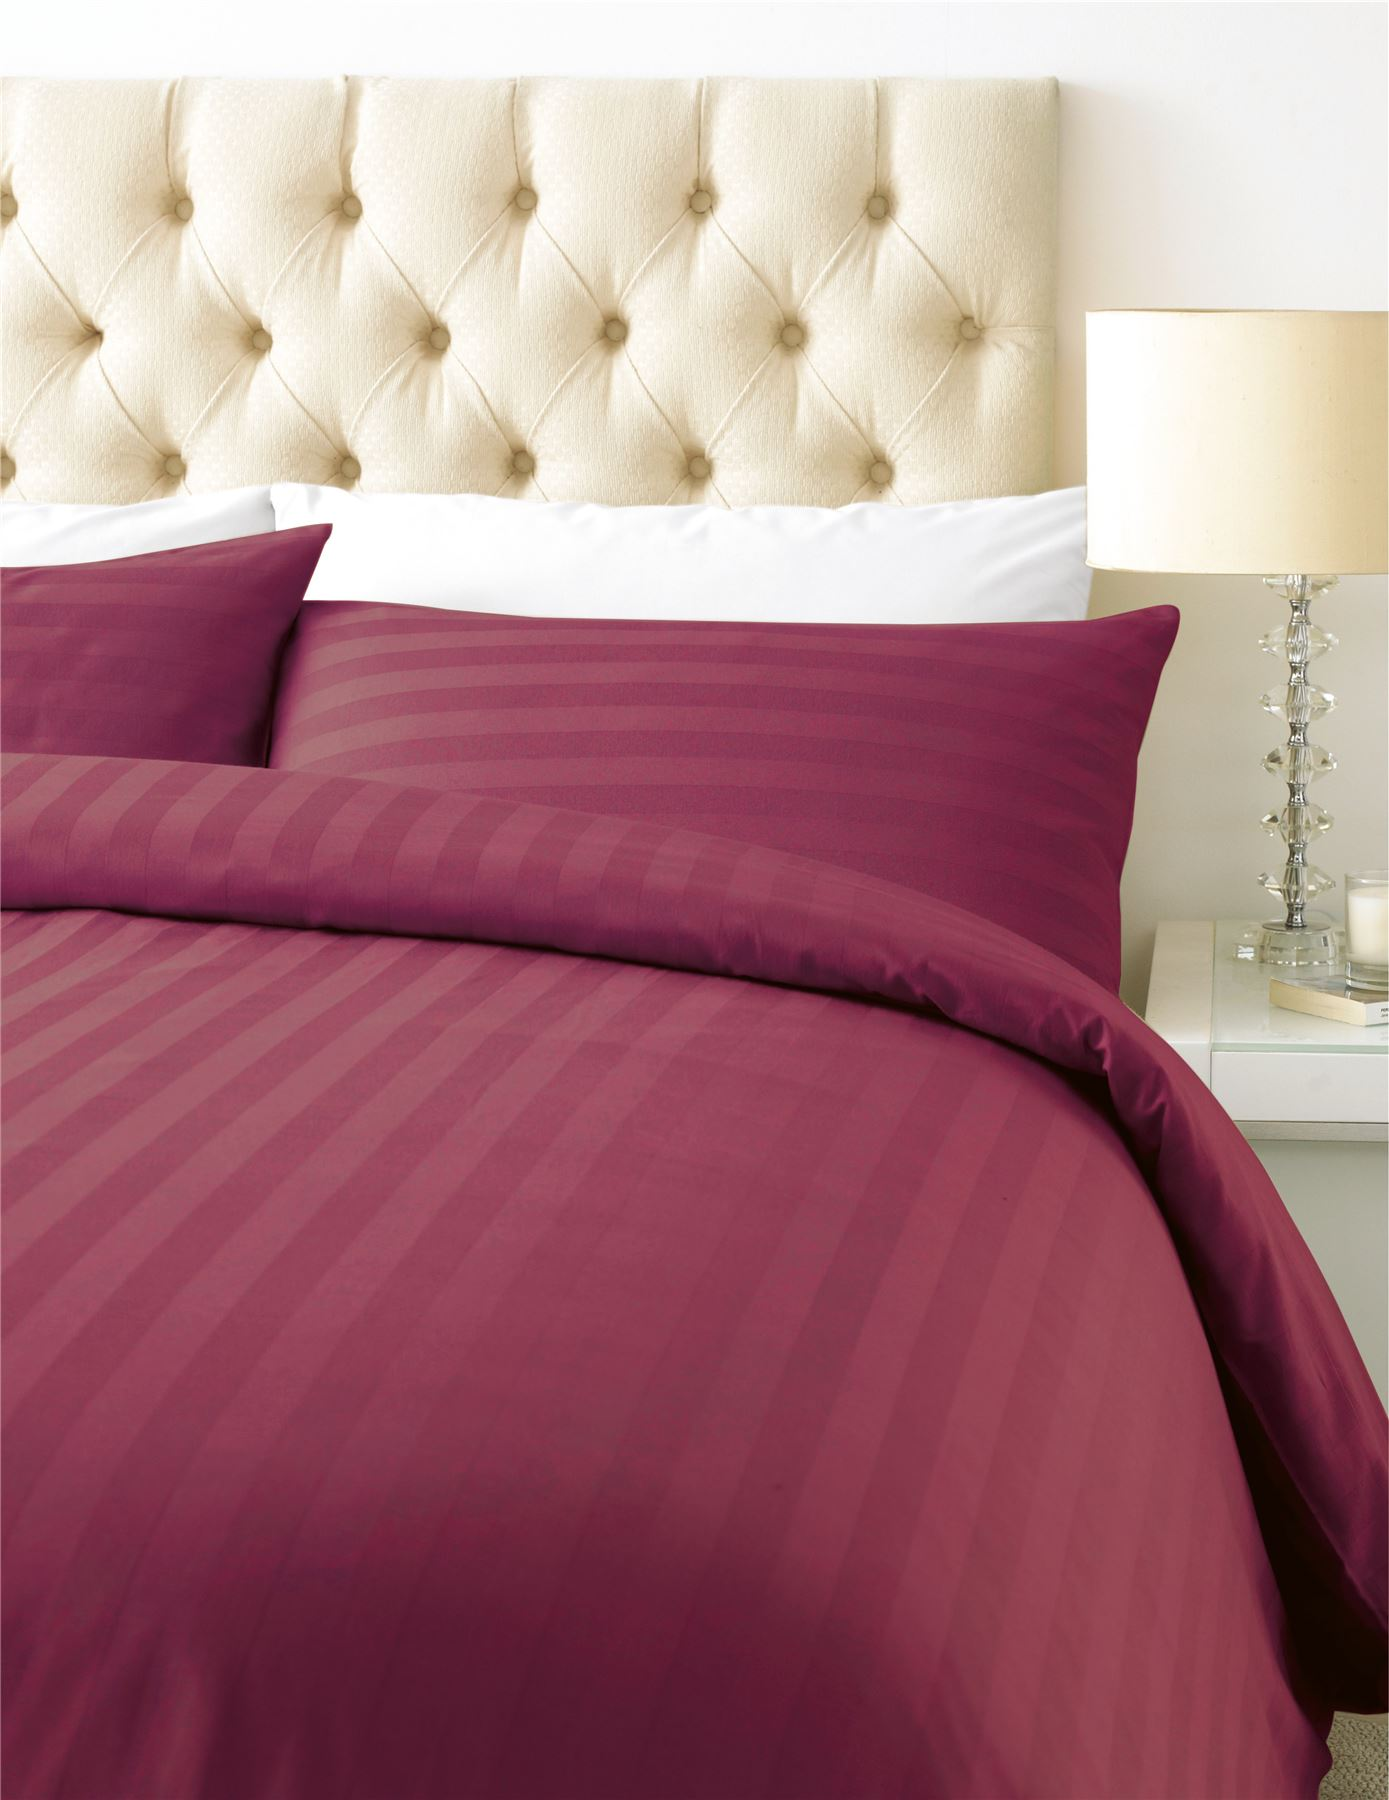 Luxury 800 Thread Count Duvet Cover With Pillowcase Cotton